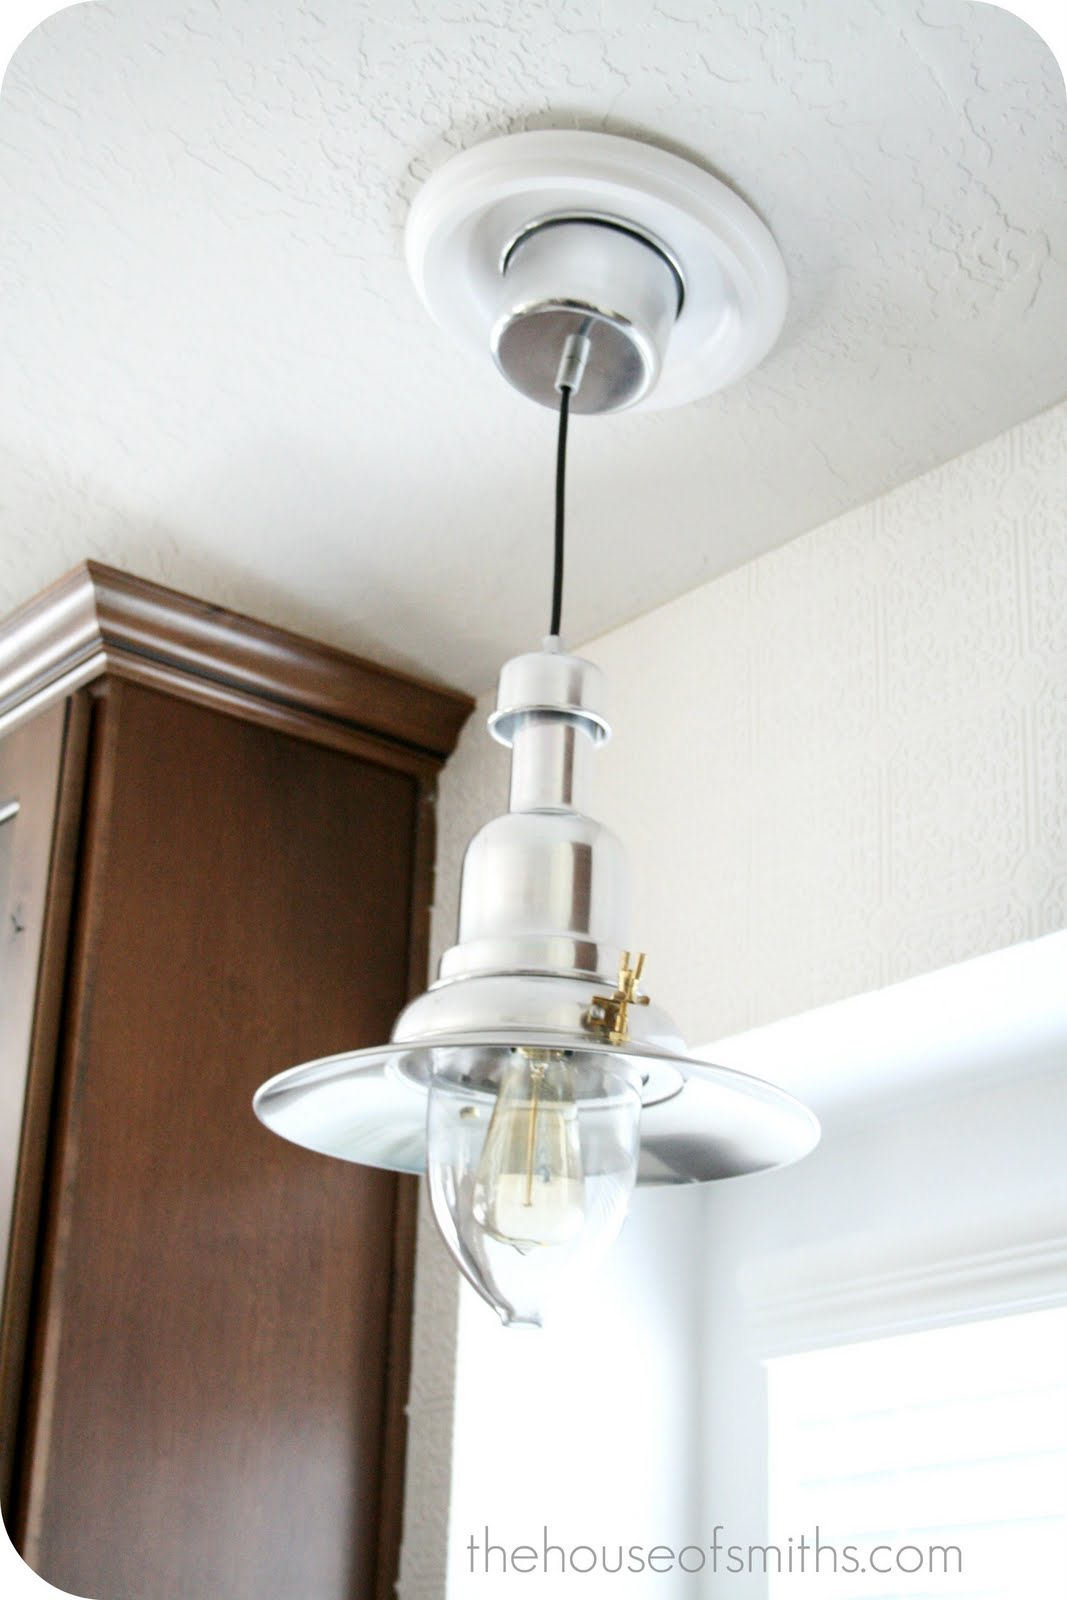 new kitchen lighting converting can ikea kitchen lighting New Kitchen Lighting Converting a can light with a Recessed Light Adapter